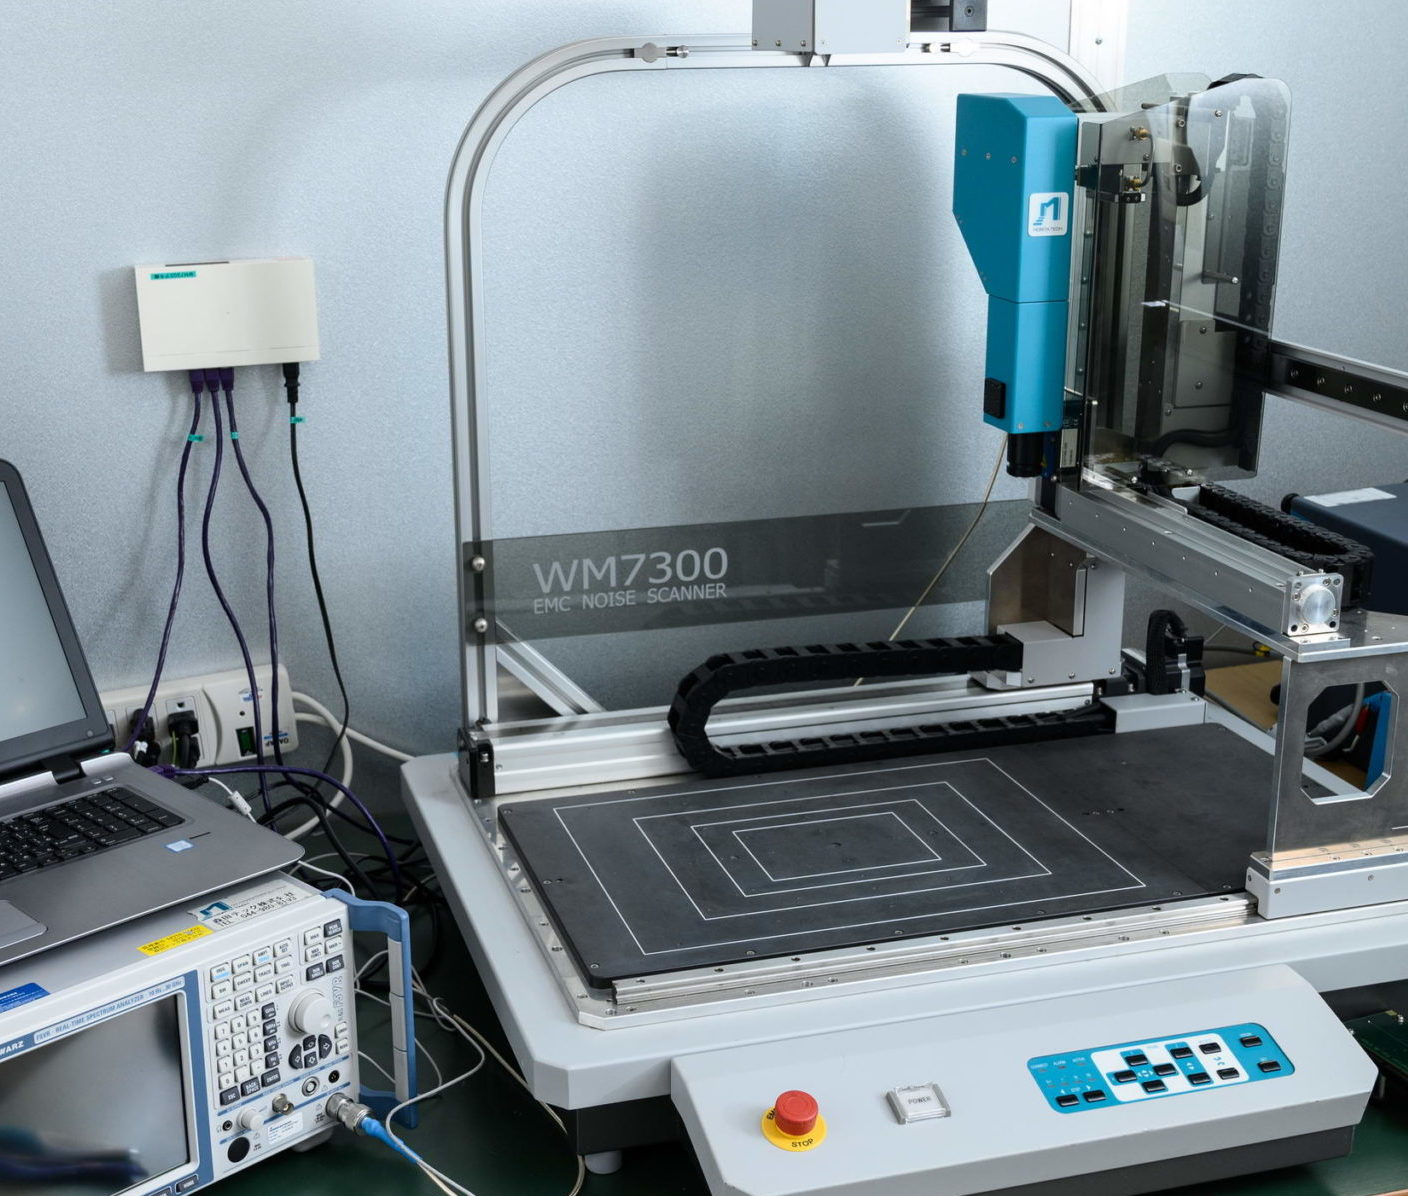 WM7000 series for A4 to A3 size item measurement<br>用于A4至A3尺寸物体测量WM7000系列